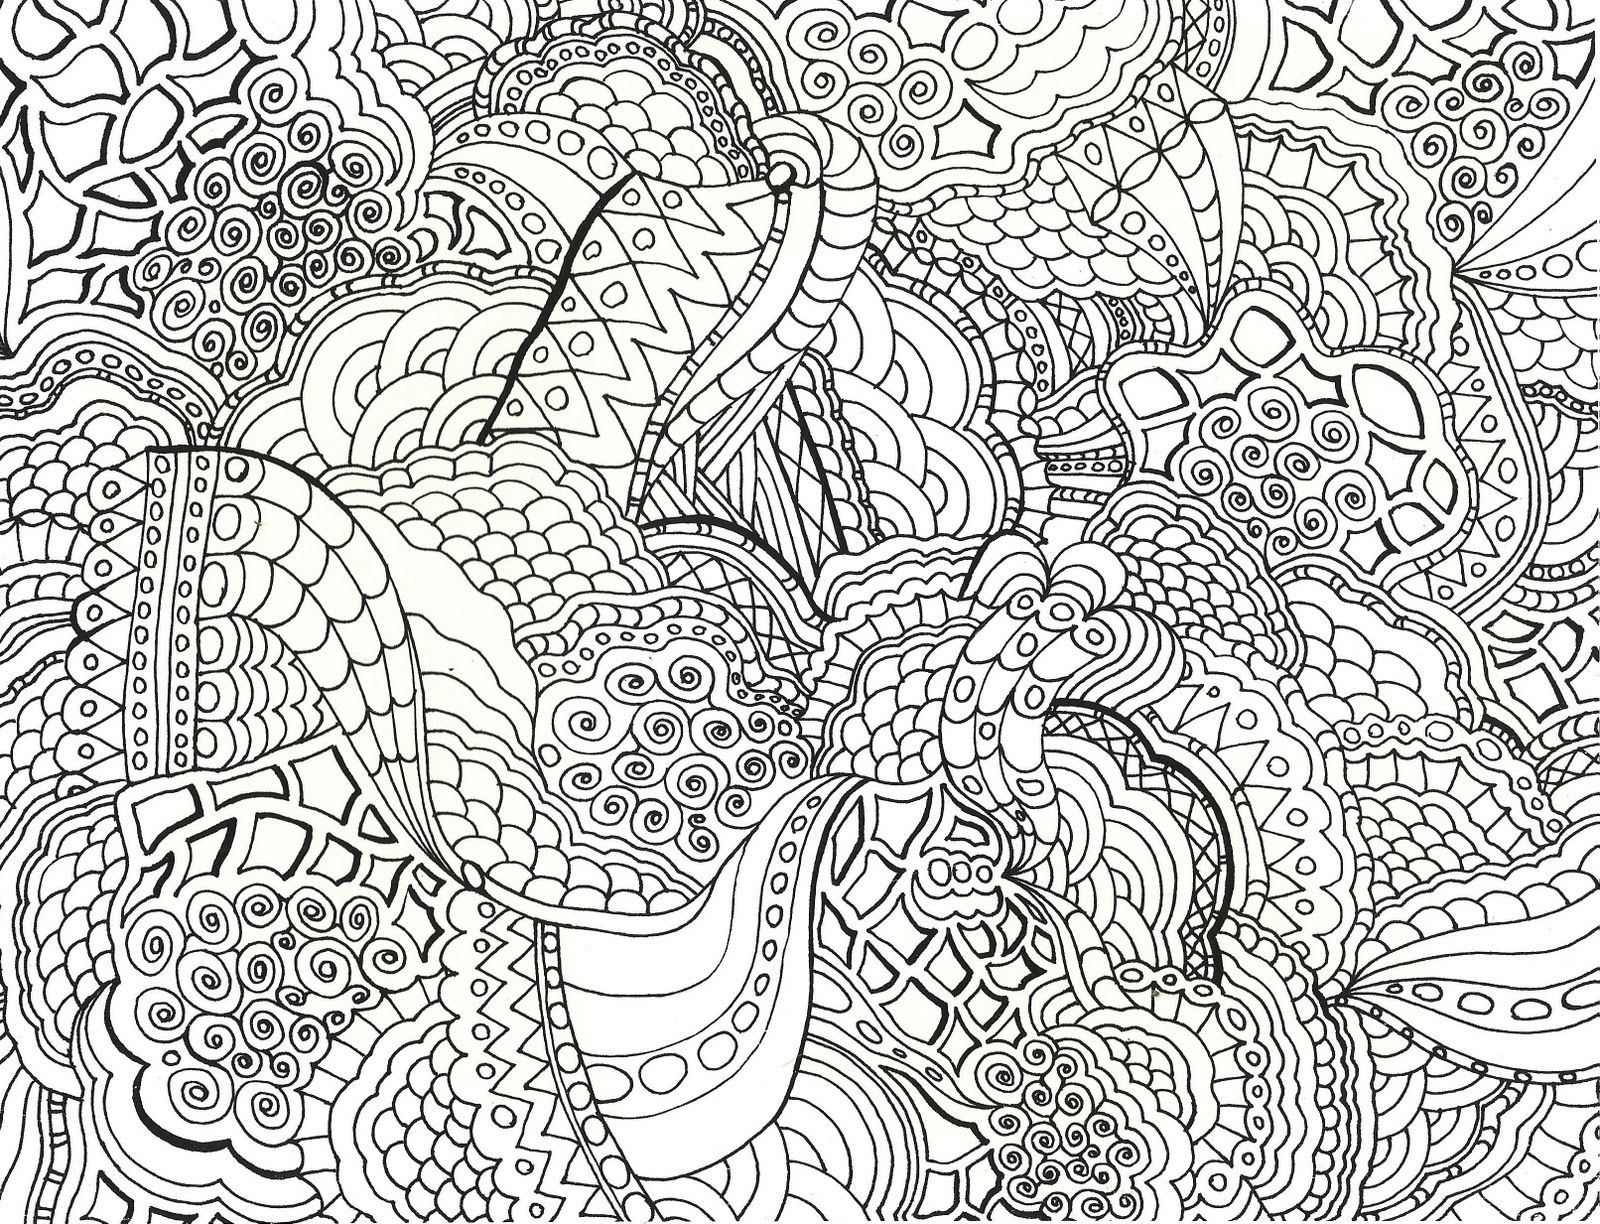 colouring pages hard patterns detailed coloring pages for adults coloringsquare1_sm adult